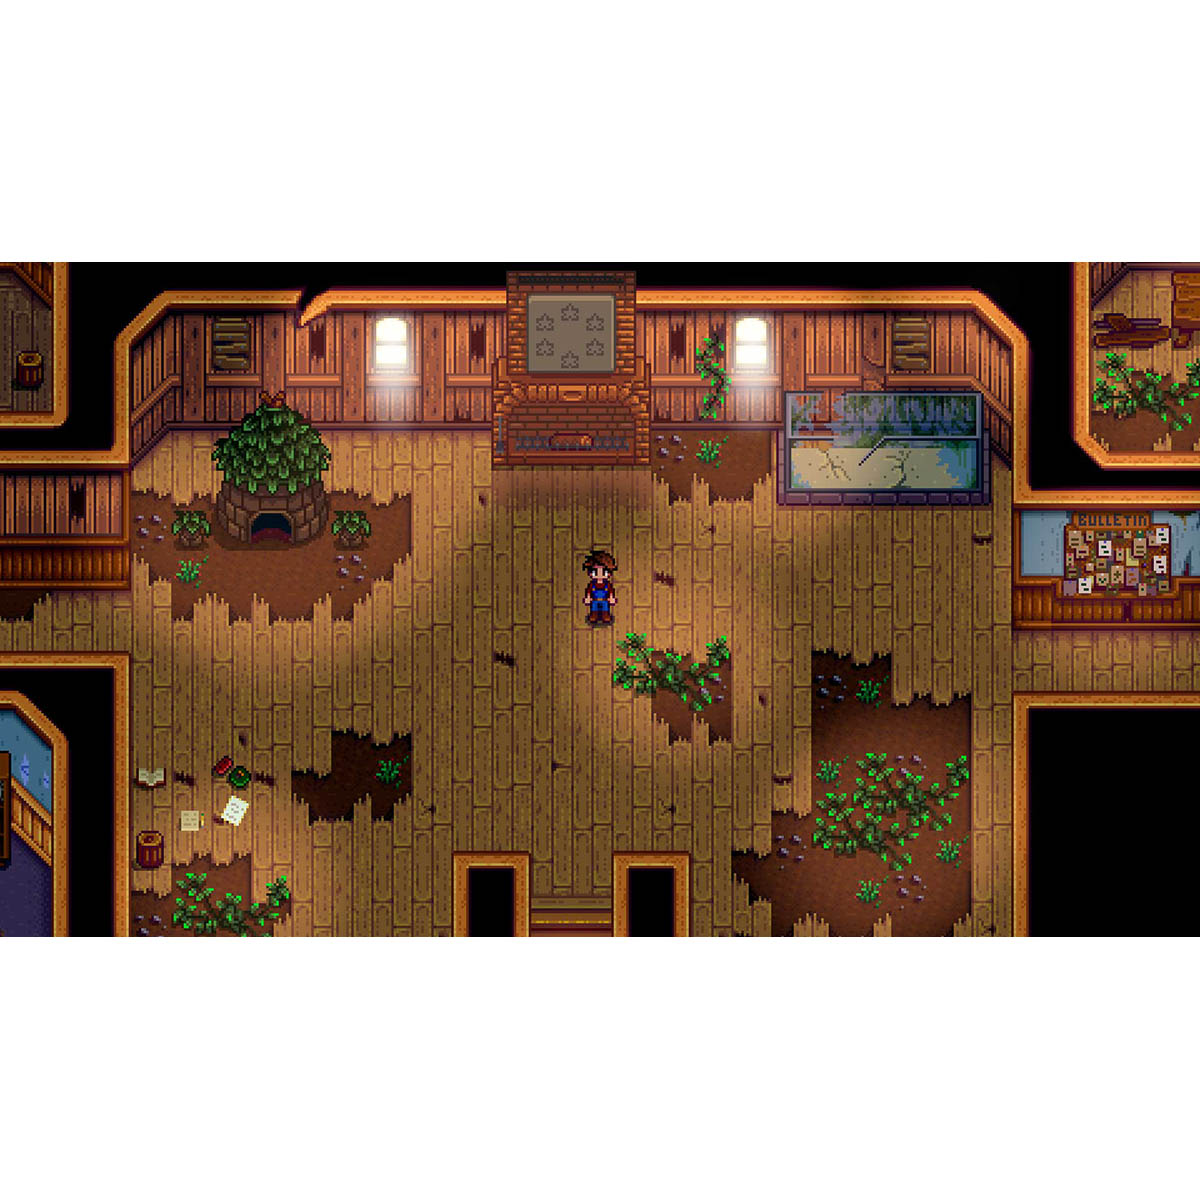 Stardew Valley: Collector's Edition - PS4